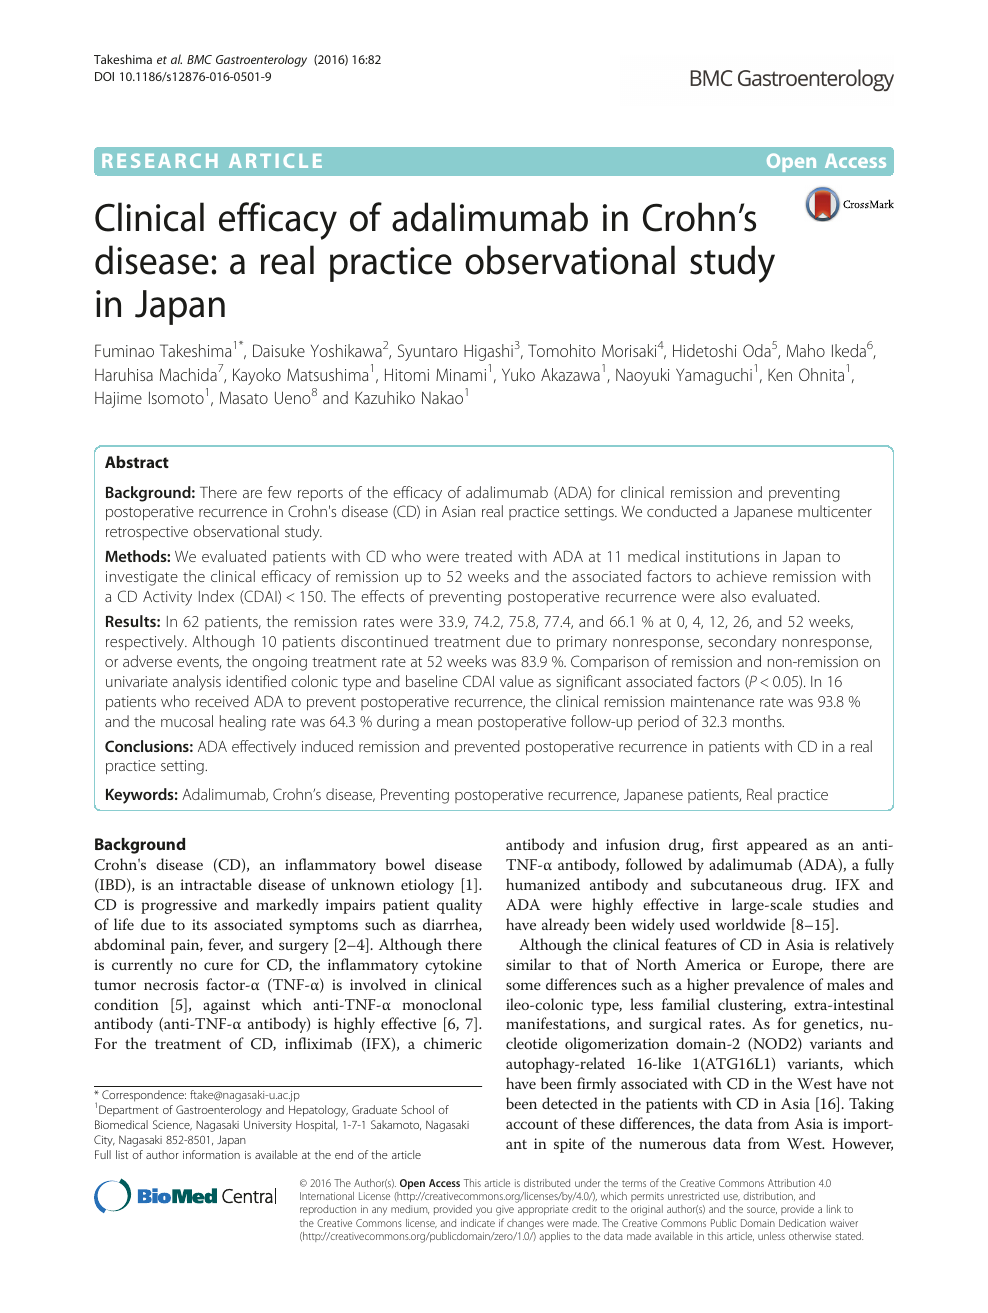 Clinical efficacy of adalimumab in Crohn's disease: a real